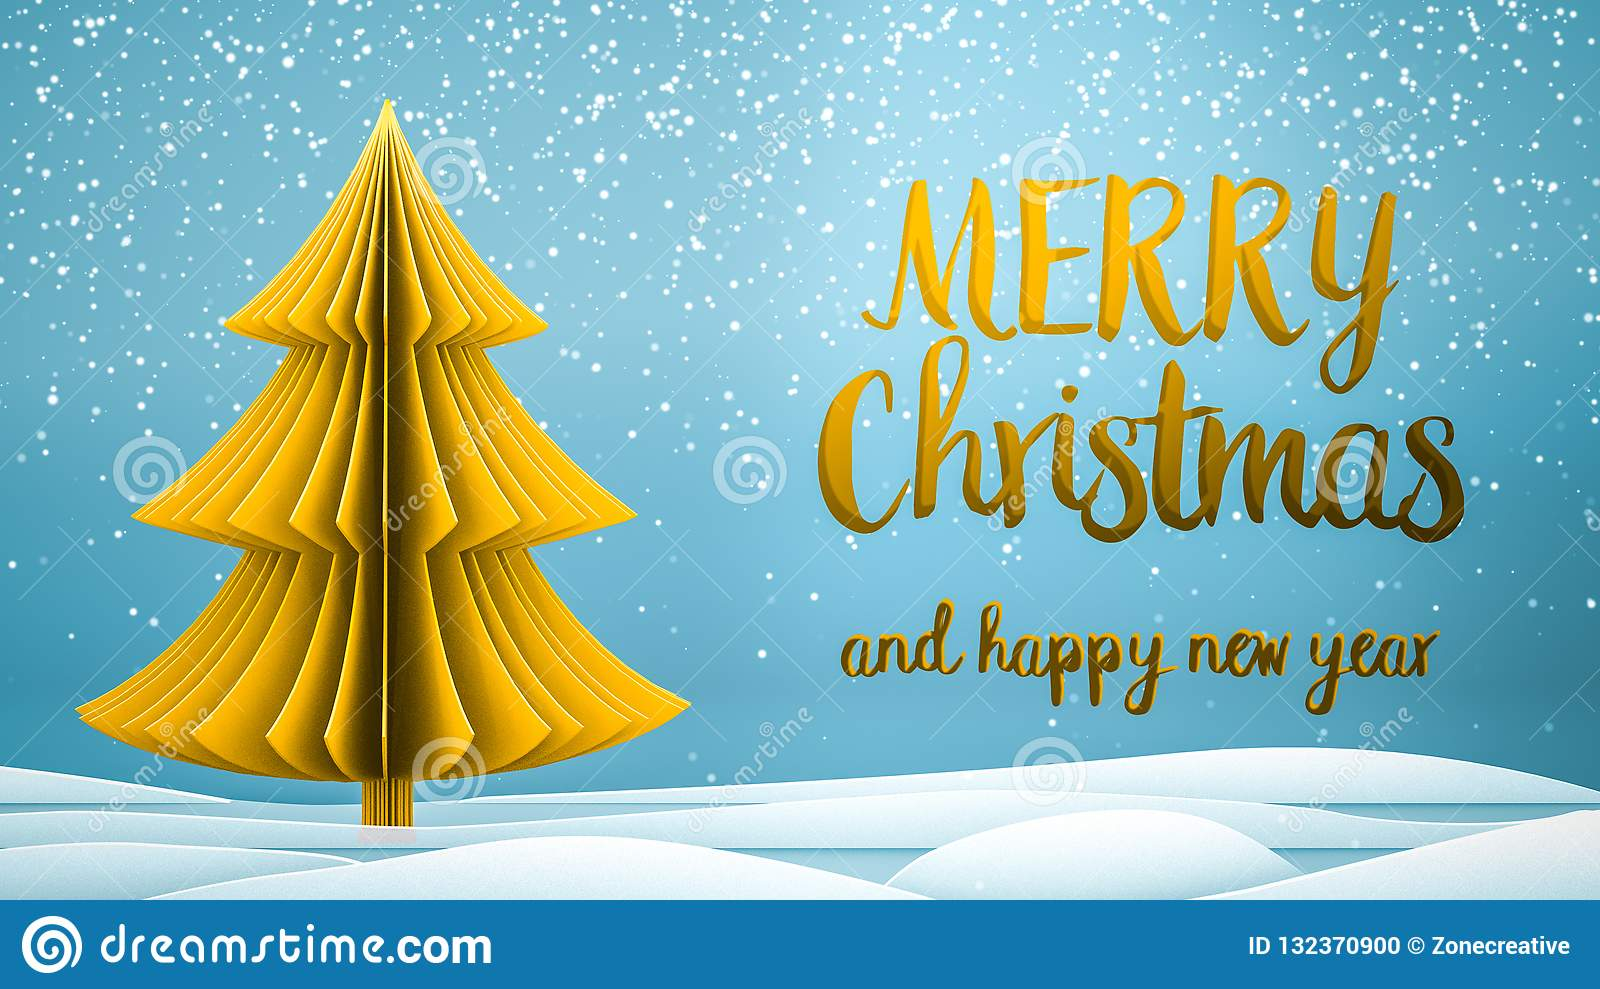 gold xmas tree merry christmas and happy new year greeting message in english on blue background